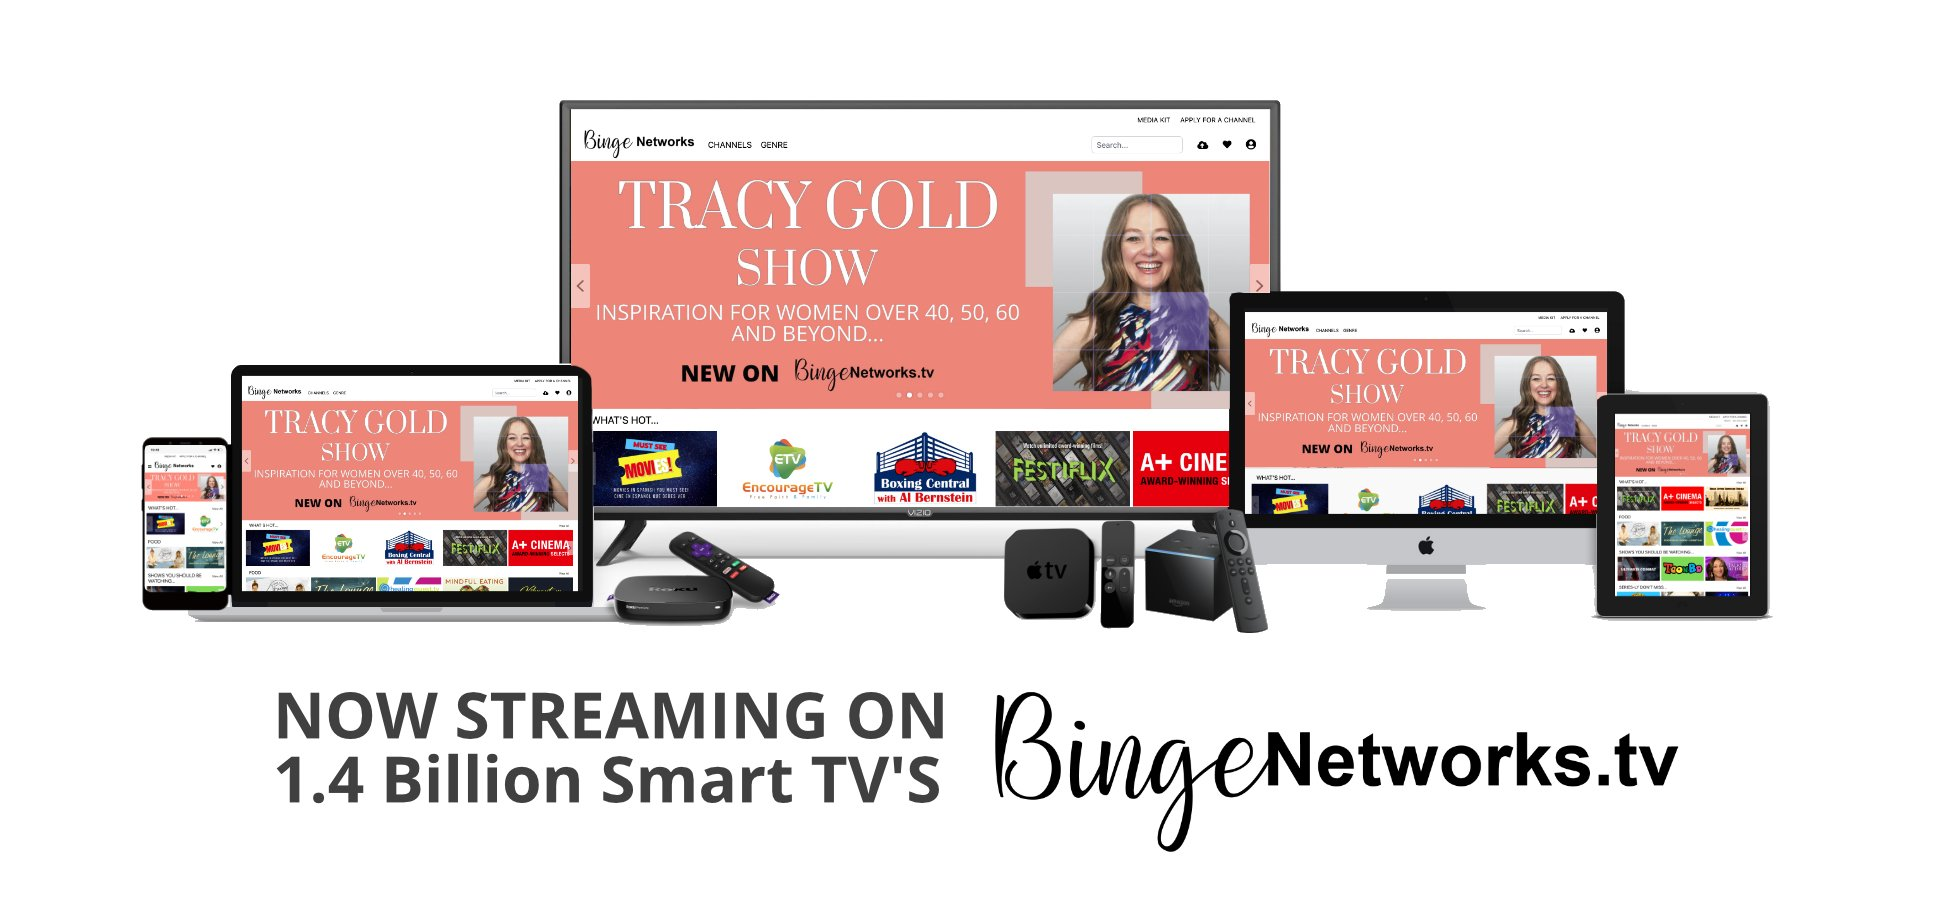 Tracy Gold Show - Streaming online